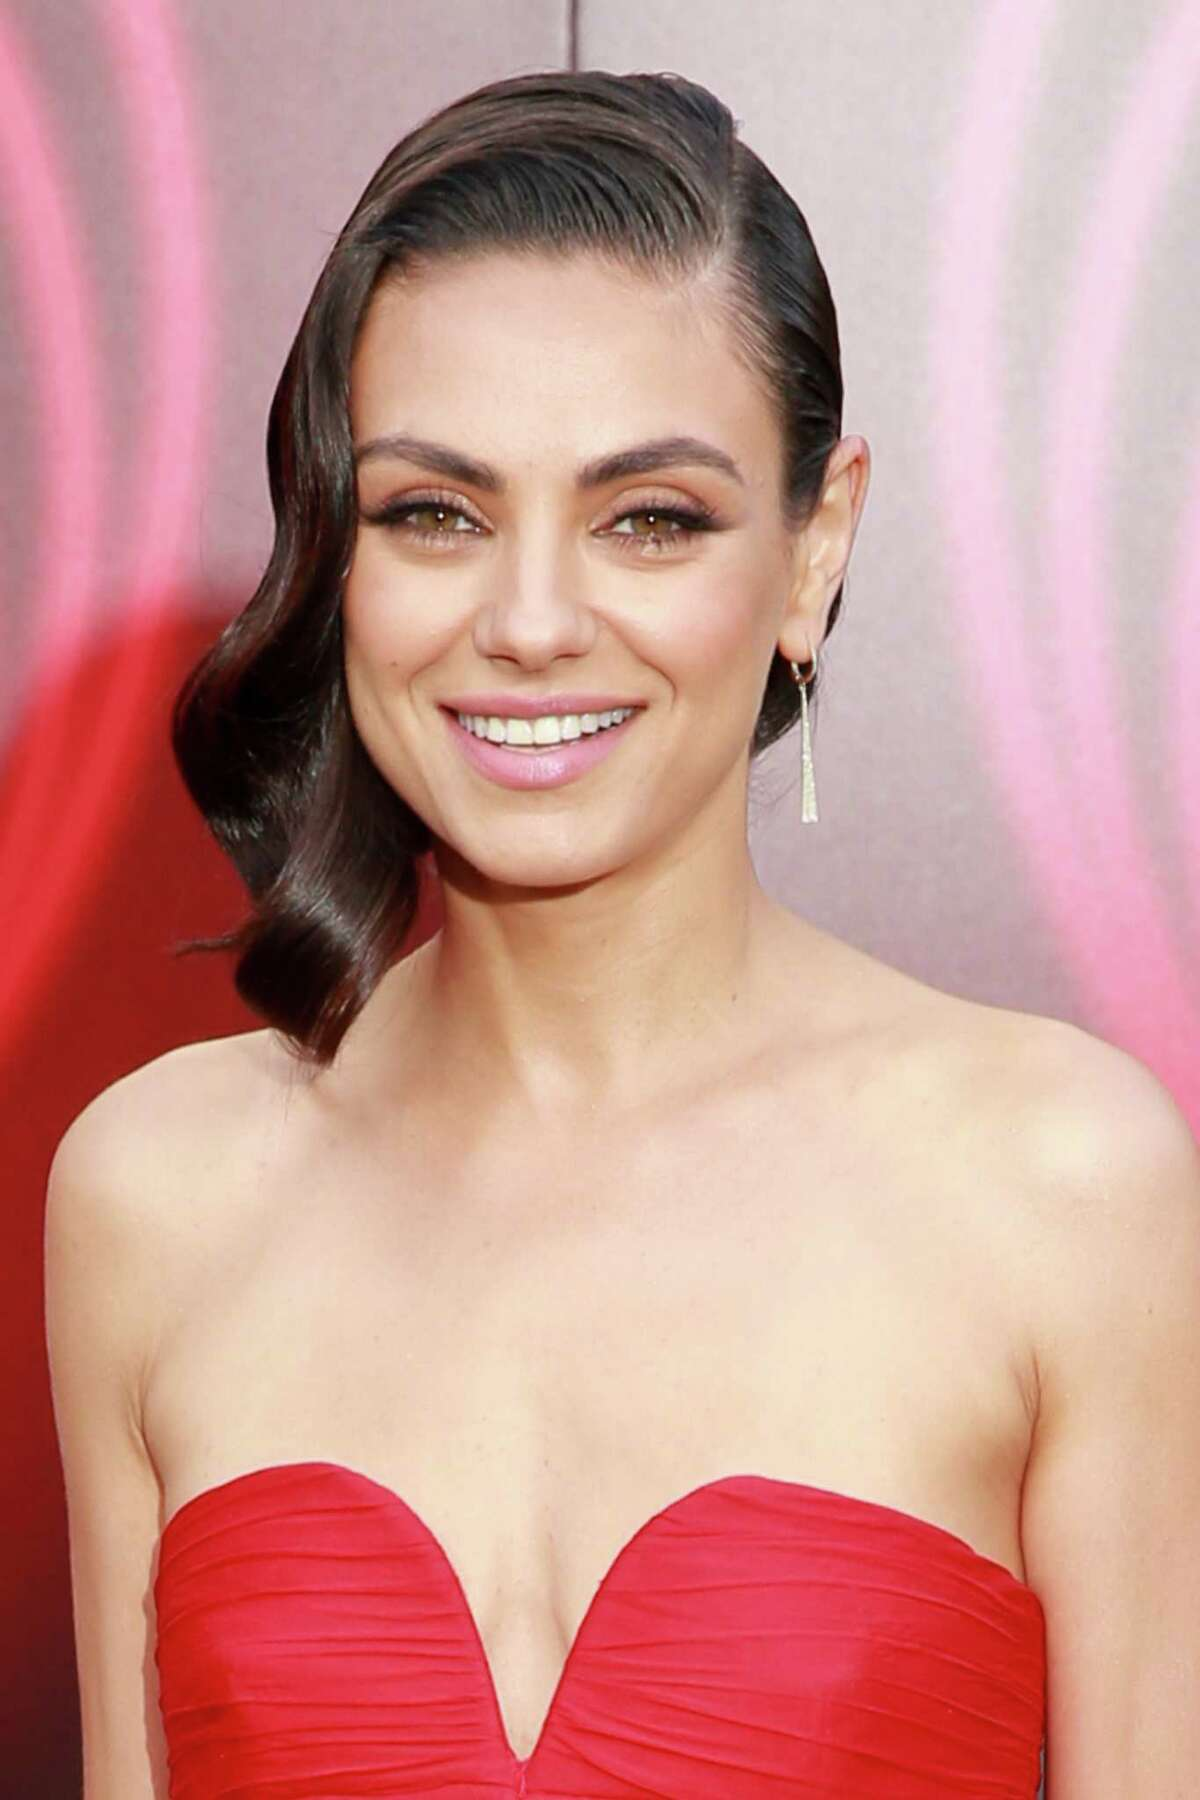 LOS ANGELES, CA - JULY 25: Mila Kunis attends the premiere of Lionsgate's